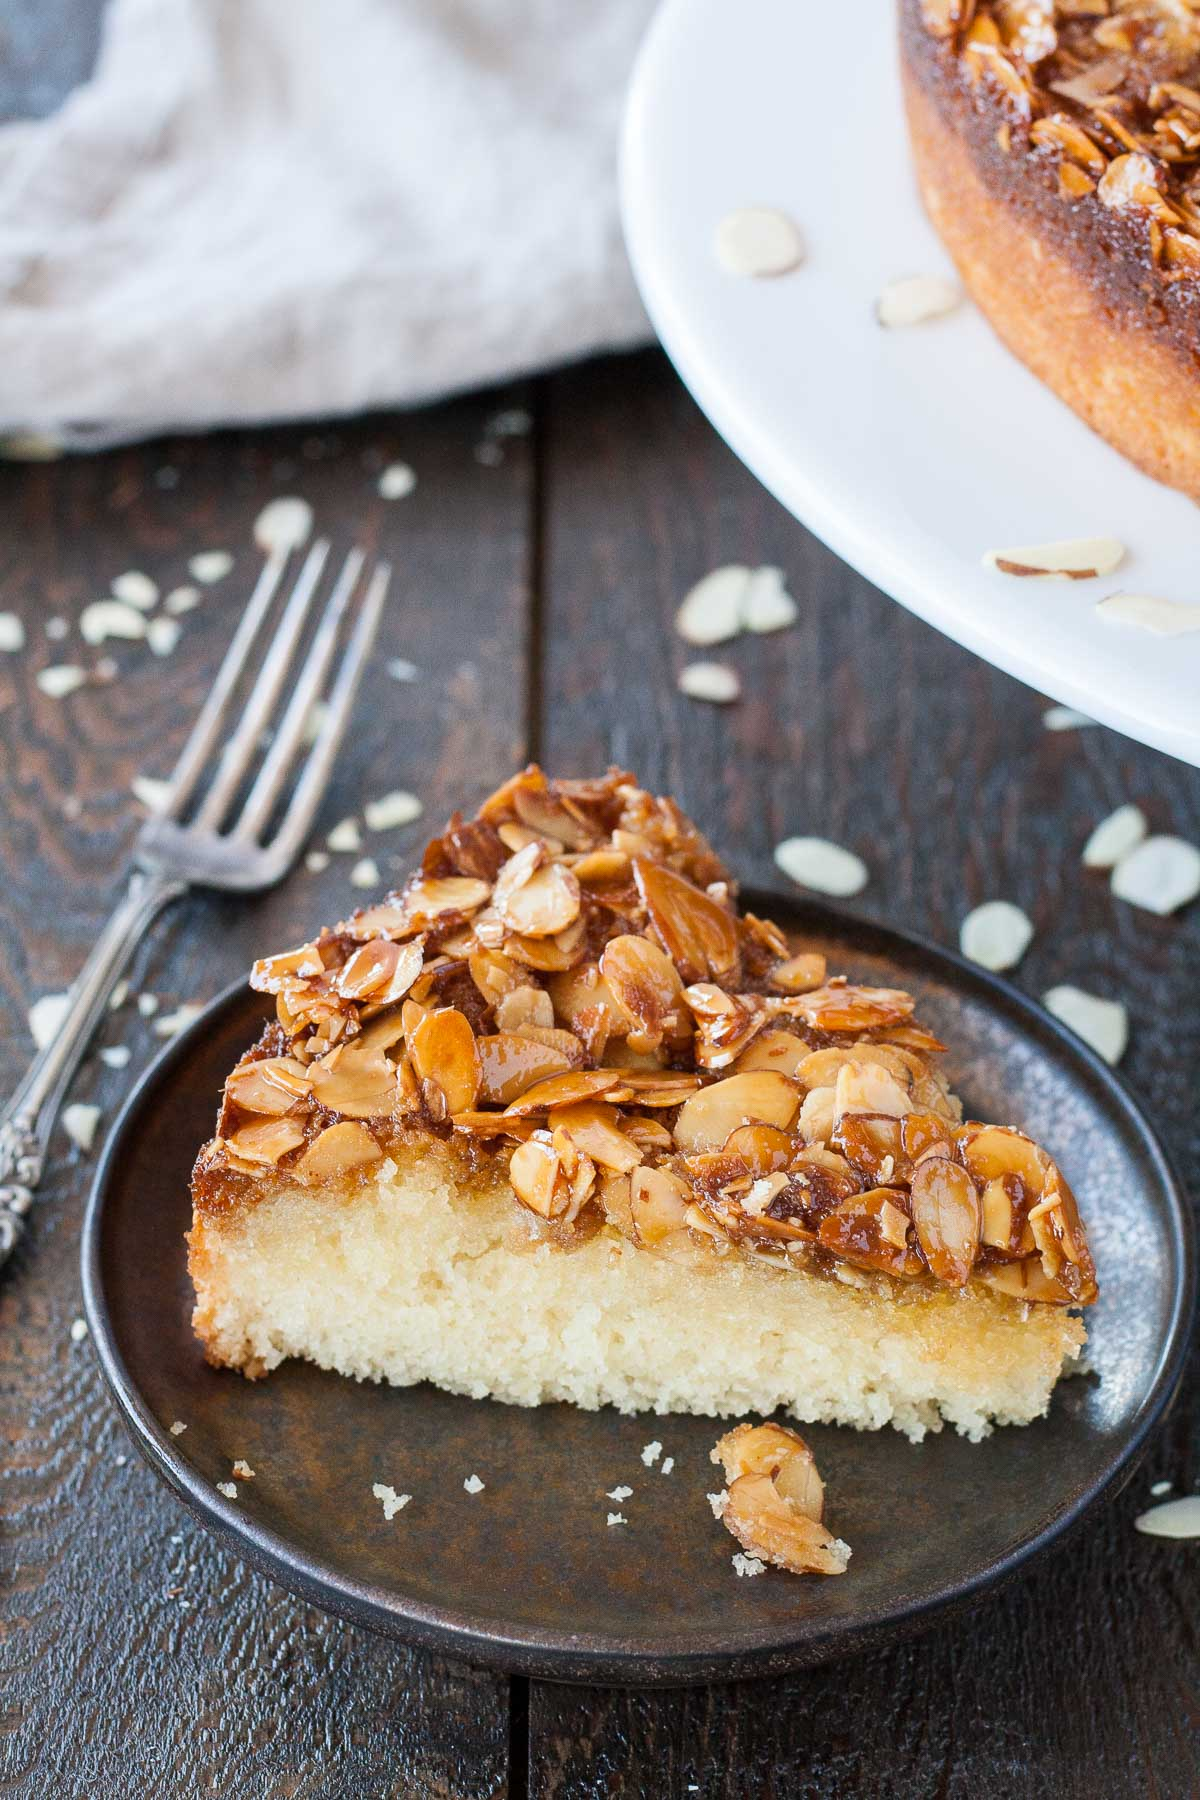 This easy Caramel Almond Upside-Down Cake is packed with almond flavour and has just the right amount of sweetness. A perfect pairing for your afternoon tea. | livforcake.com